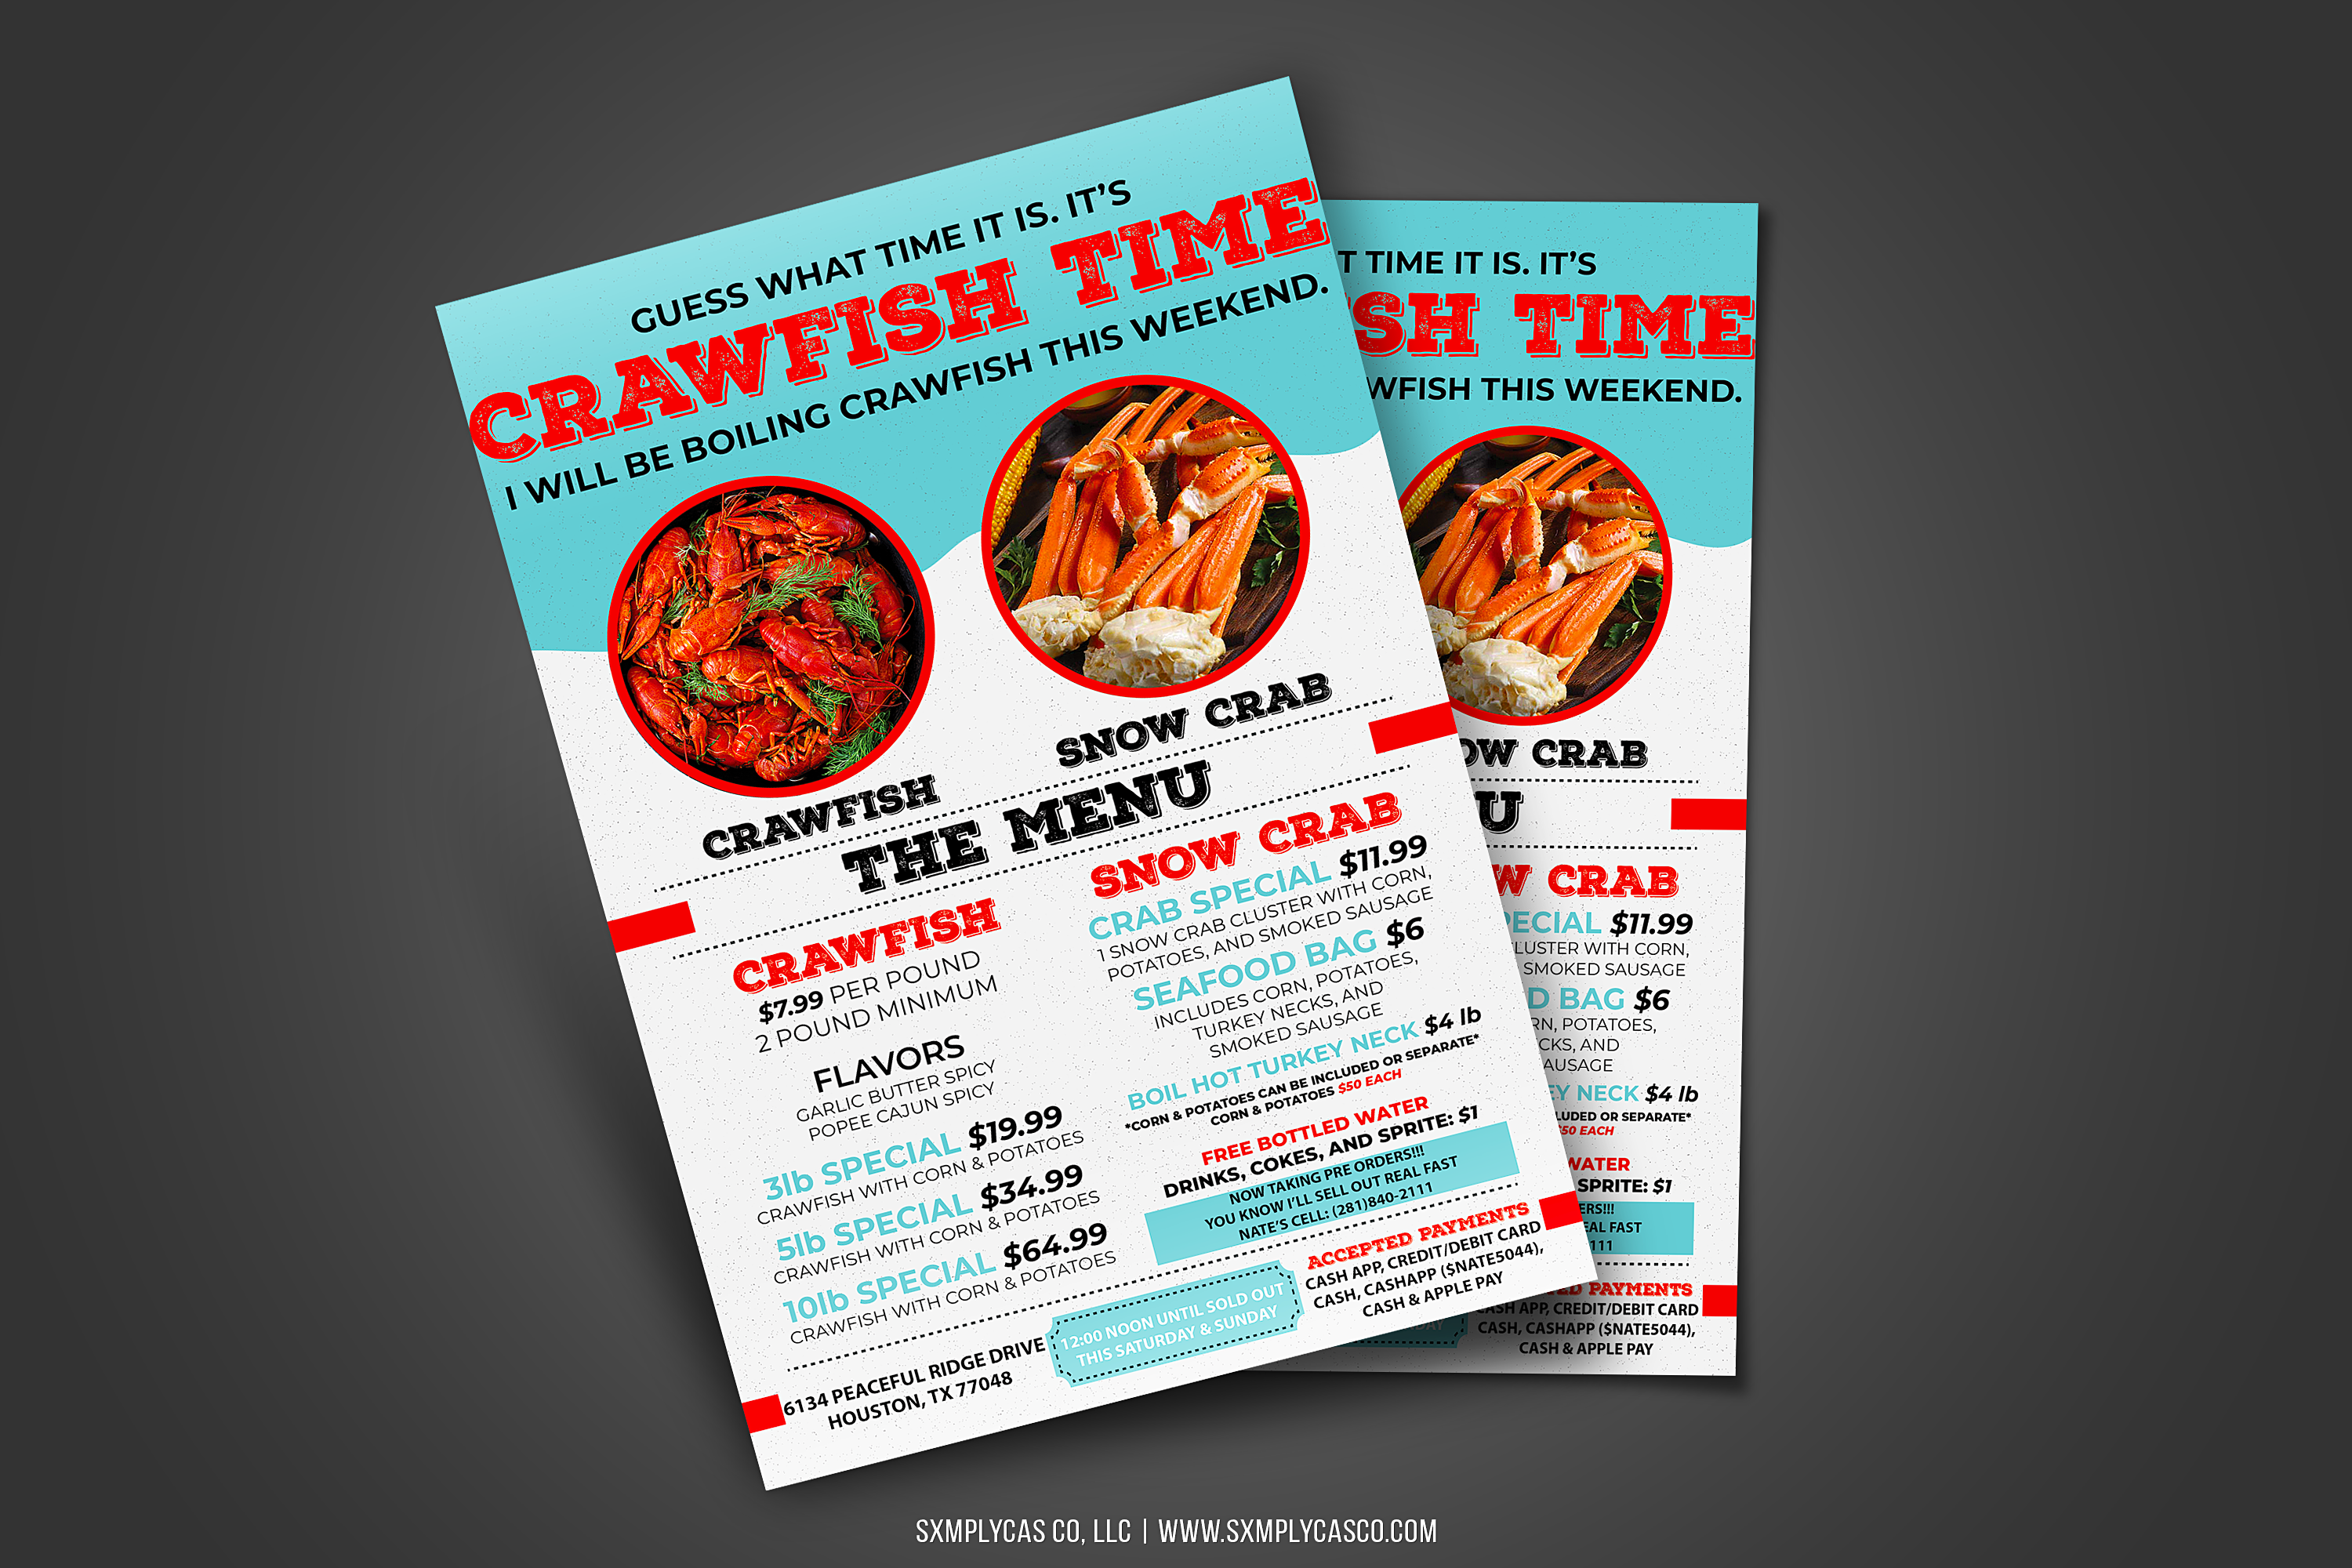 CRAWFISH FLYER